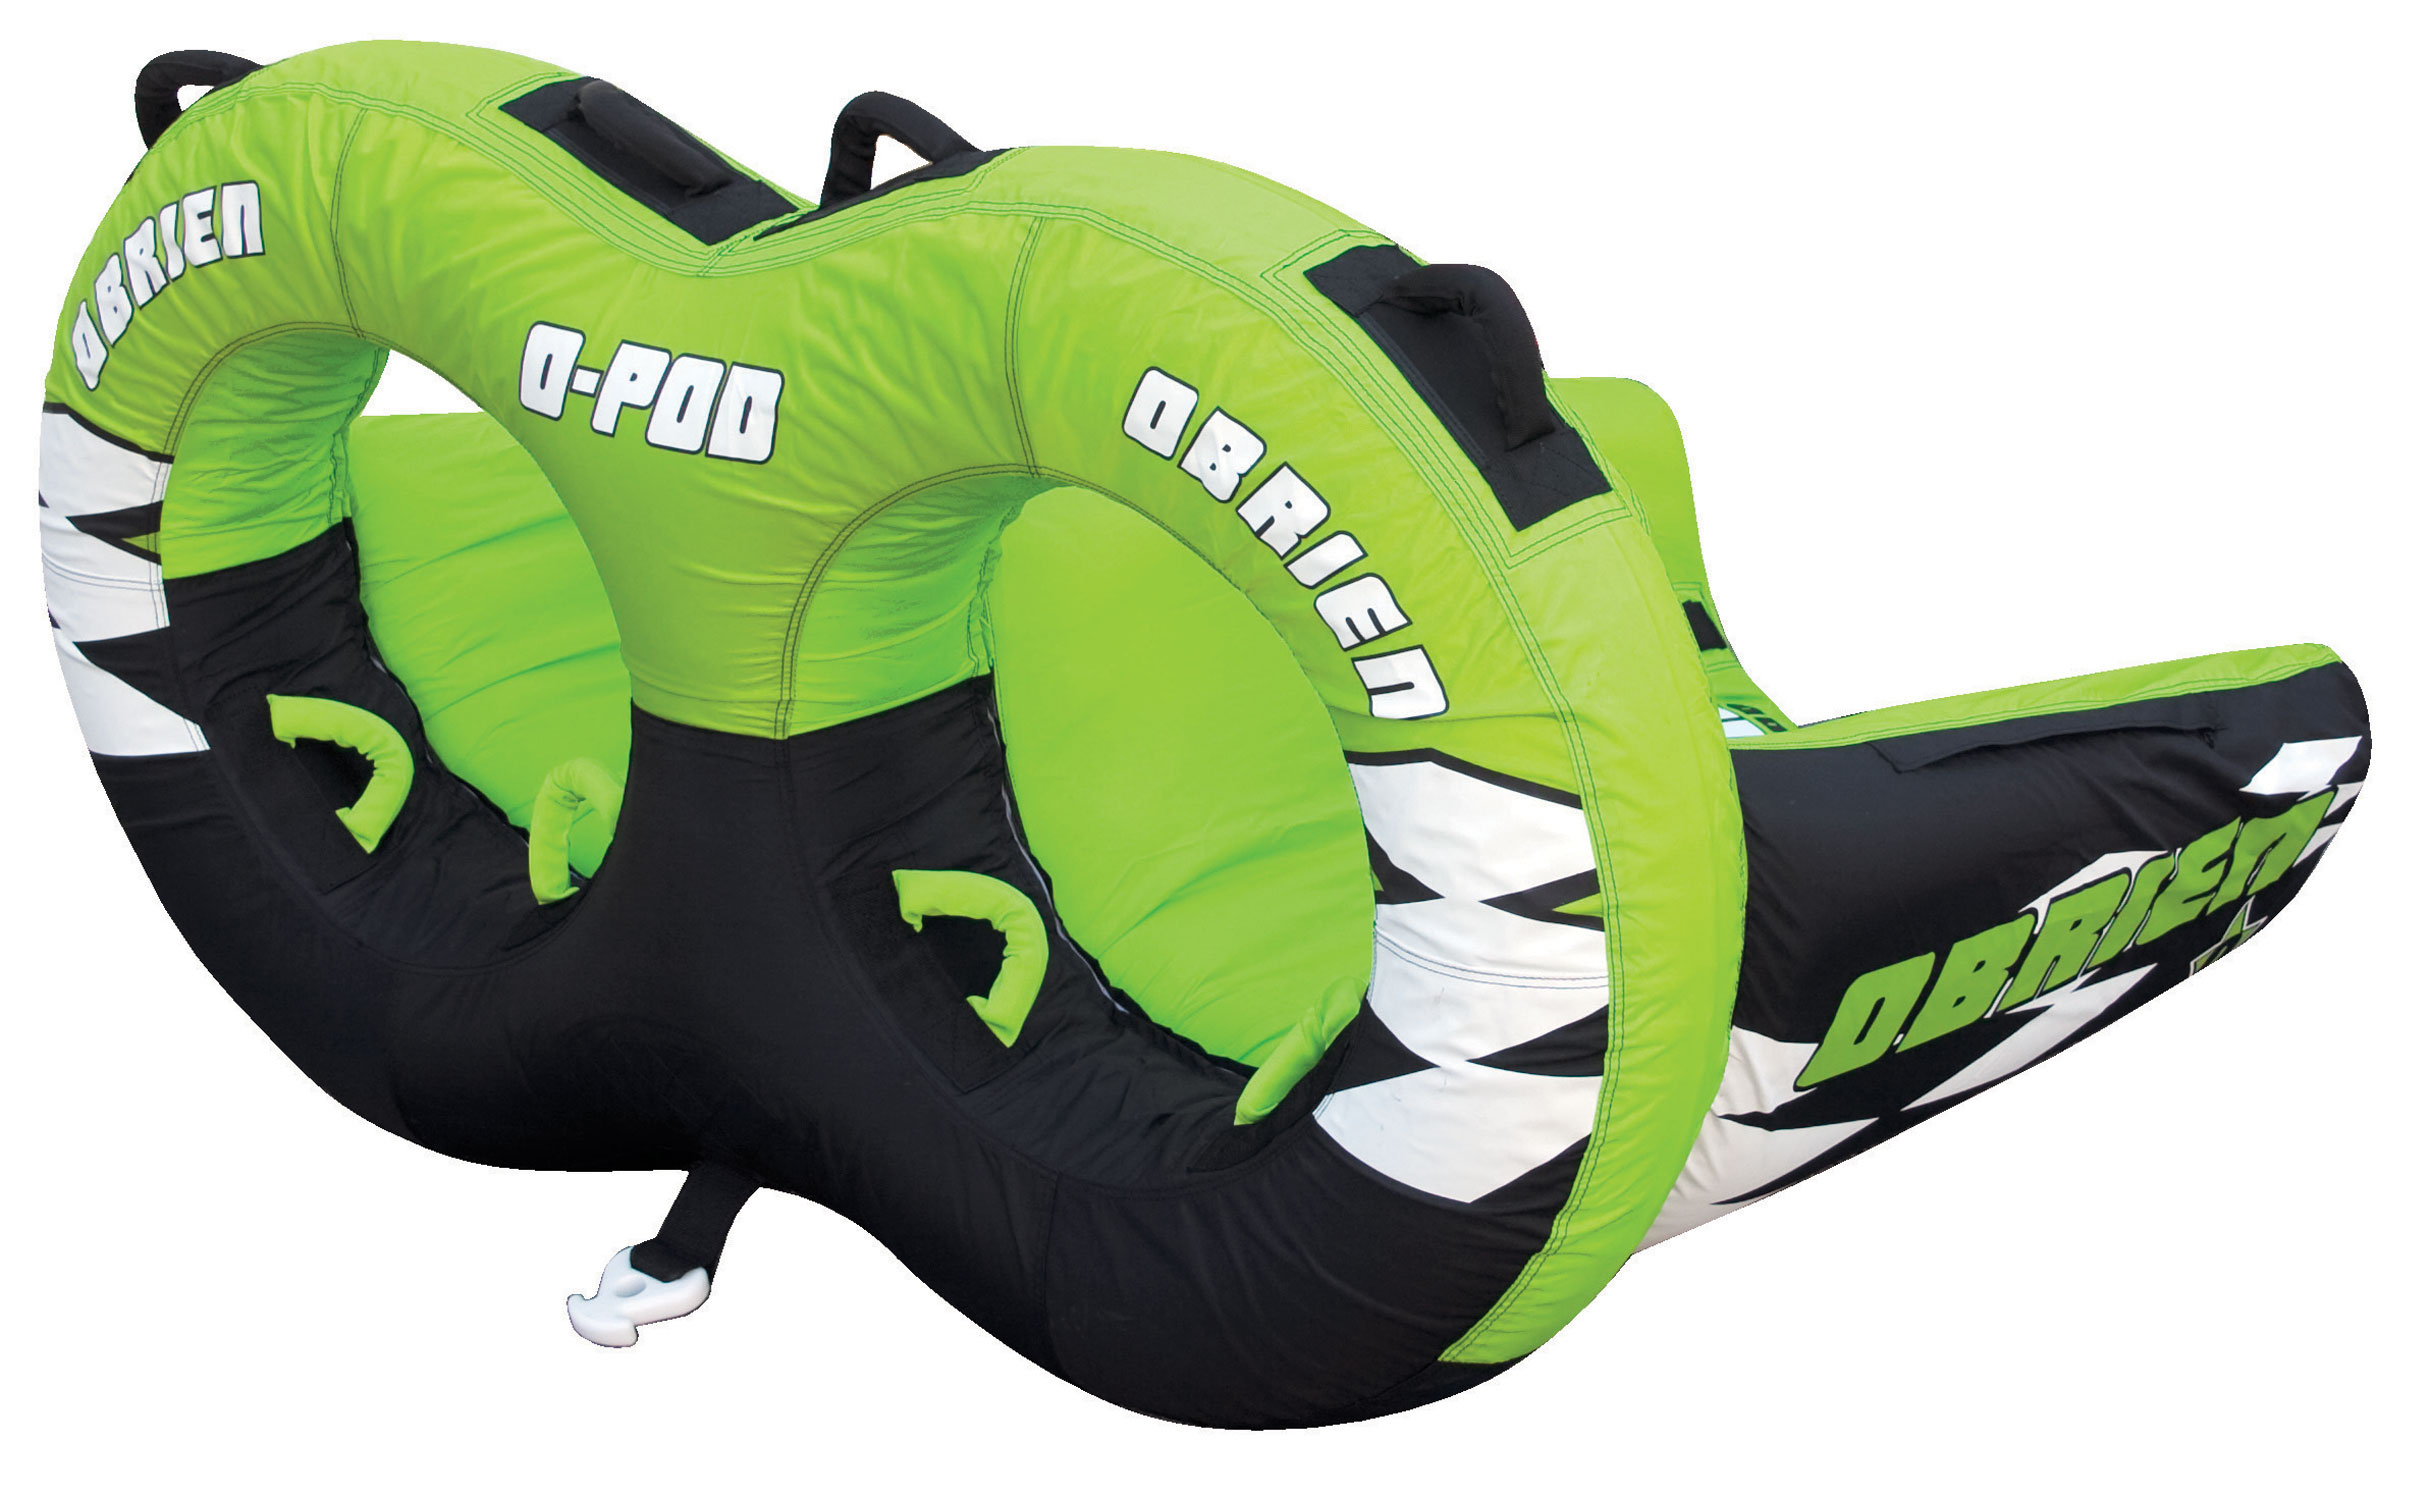 "Looking for the ultimate in tubing excitement this summer? This hefty O'Brien O-Pod towable tube measures in at over five and a half feet, providing ample space for up to two adult riders. It comes with the industry-standard Boston valve, for easy inflation and compatibility with many types of pumps. Don't worry about losing or wrecking it either; the tube comes in eye-catching neon colors for easy visibility in water and carries a 1-year limited warranty.Key Features of the O'Brien O-Pod Inflatable Tube: 51"" X 67"" 2 Riders 1 Boston Valve One Year Limited Warranty - $178.95"